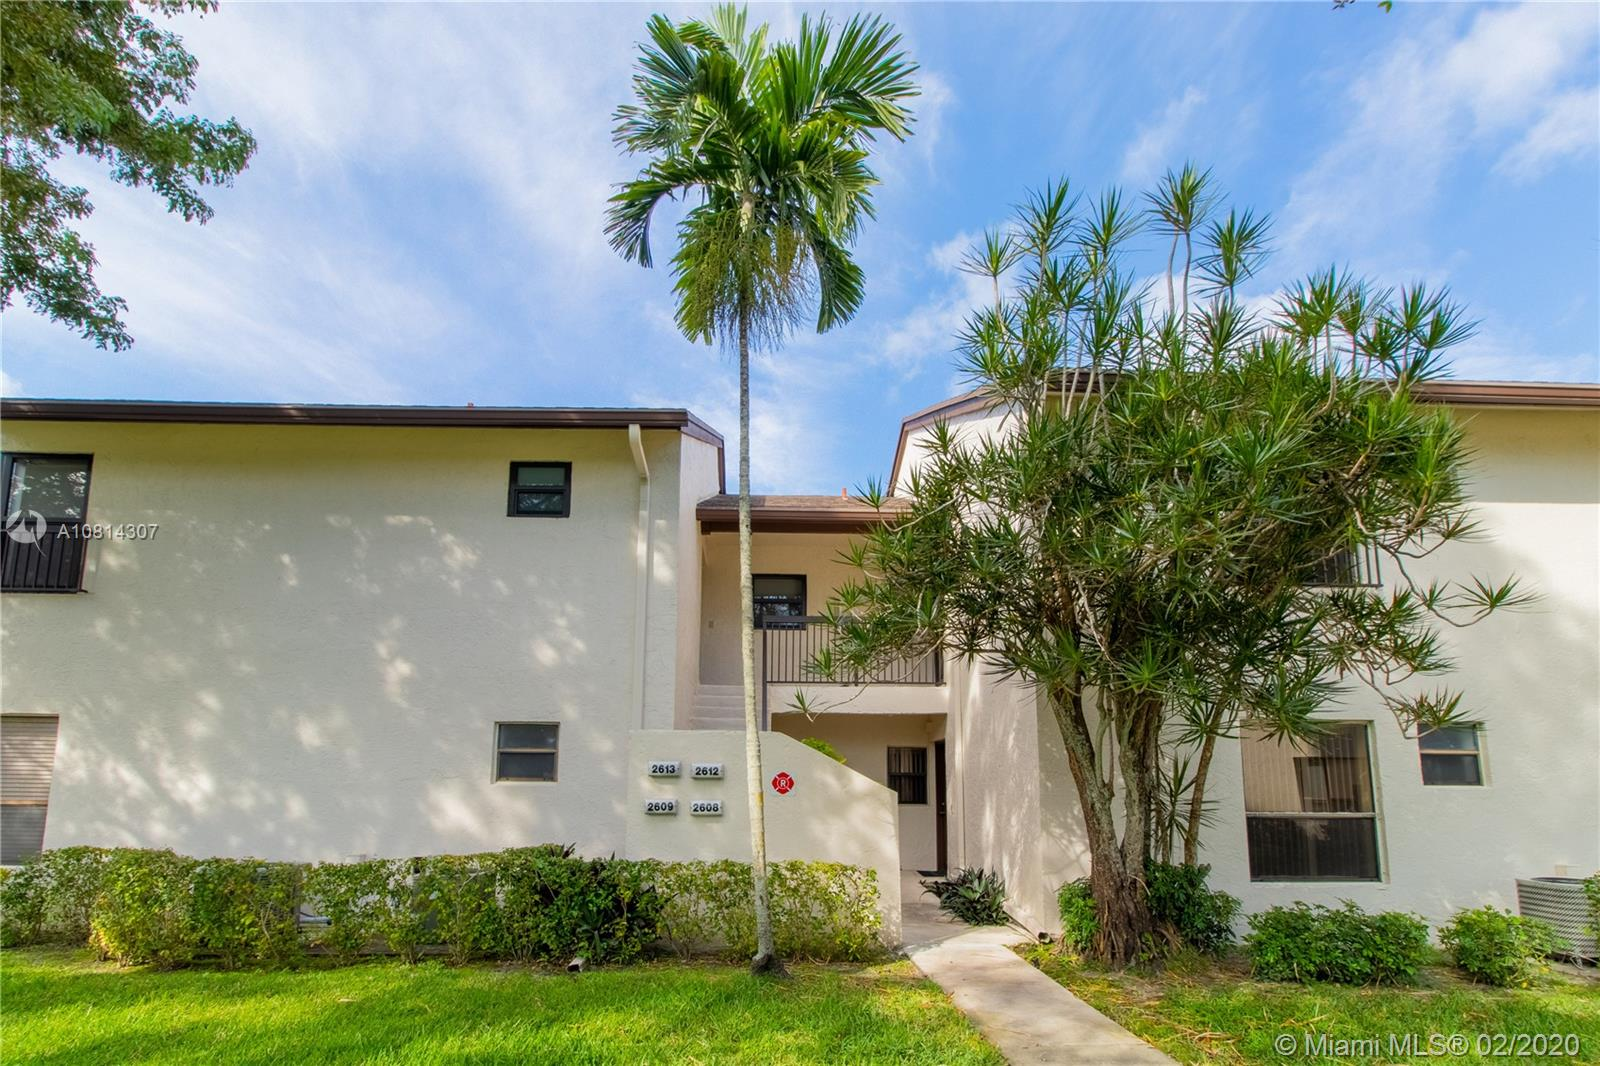 Beautifully updated condo in the desirable Baywood village of Coconut Creek city! Enter into the open and bright living room which separates the big size master bedroom area with the other two spaces bedrooms for complete privacy. The luxurious kitchen room is one of its kind from the silver metal designed backslash to the granite counter-top finished up with custom cabinetry with newer stainless steel appliances. Master bedroom has walk-in closet, and newer bathroom. The 2nd bathroom is brand new with toilet water jet! House was freshly painted with very efficient open floor plan, airy, elegant and cozy plus many caring details embedded throughout the years of home ownership by sellers. Immaculate move-in condition. Easy to get approve by association